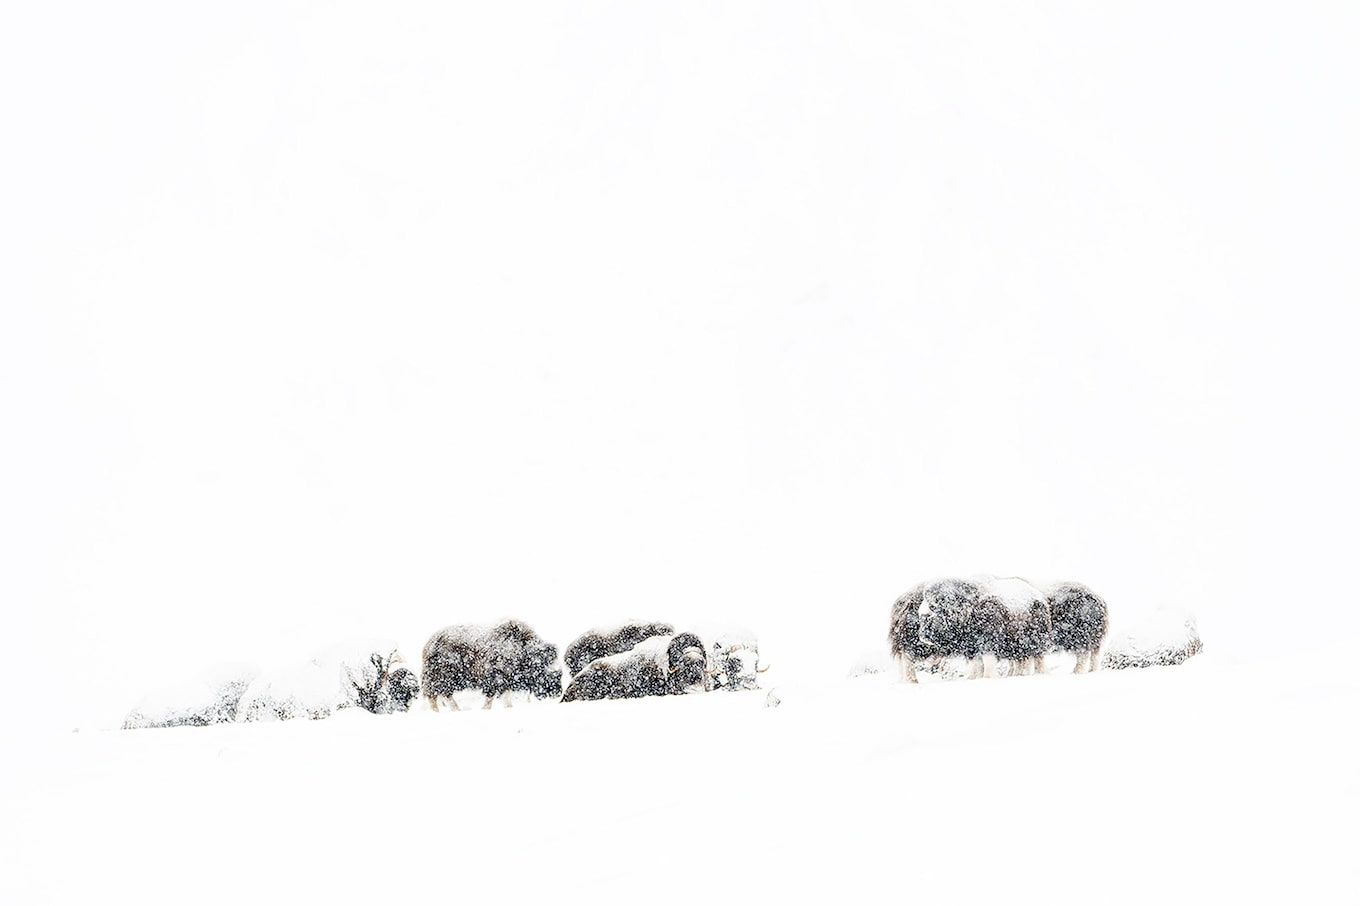 Floris Smeets sony alpha 9 a herd can be perceived in the snow